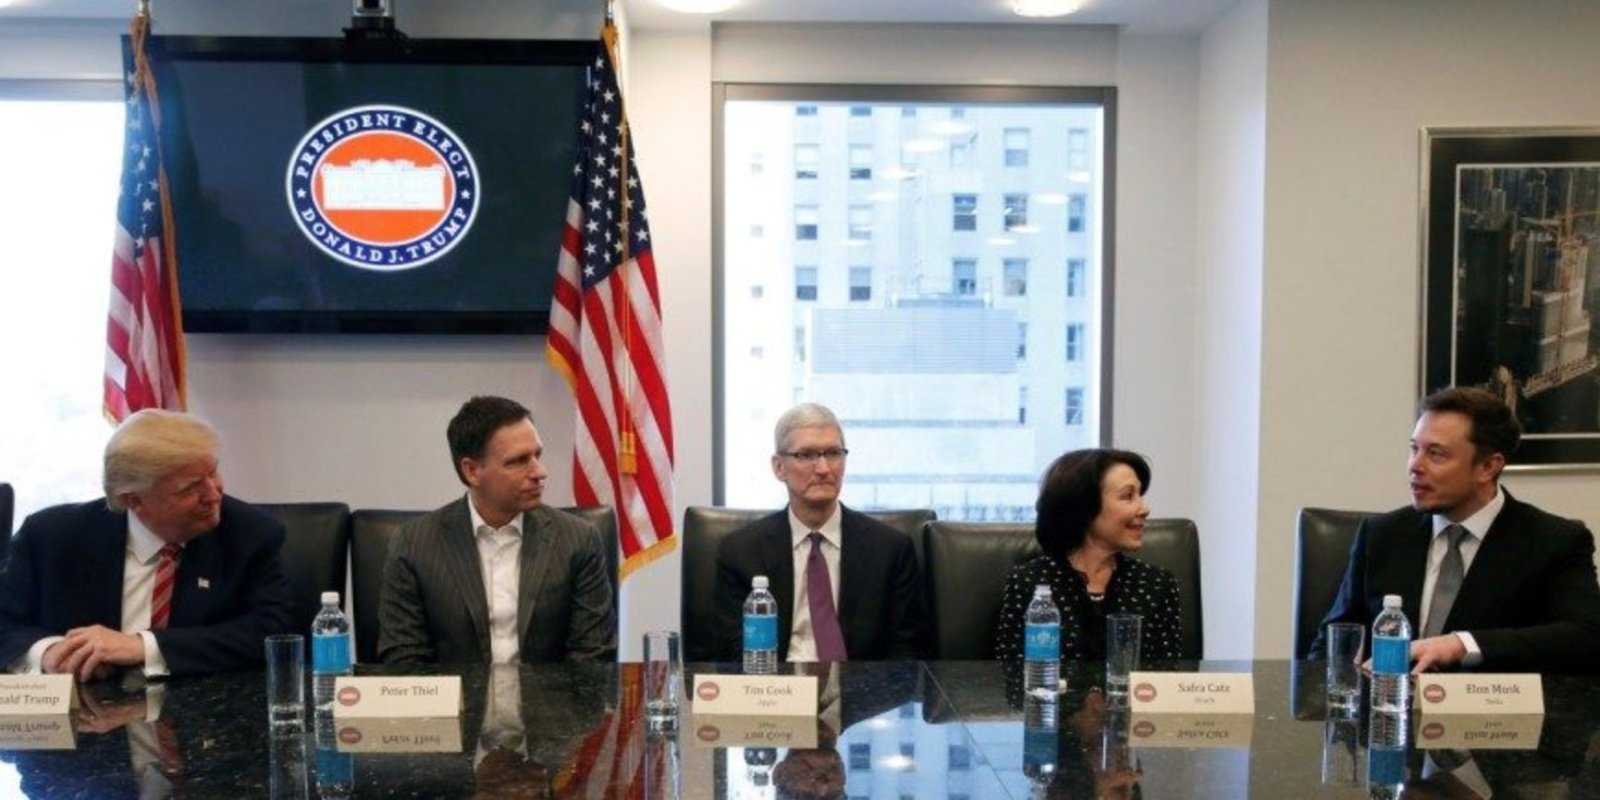 Apple among companies meeting at White House next month to talk government modernization, immigration, more